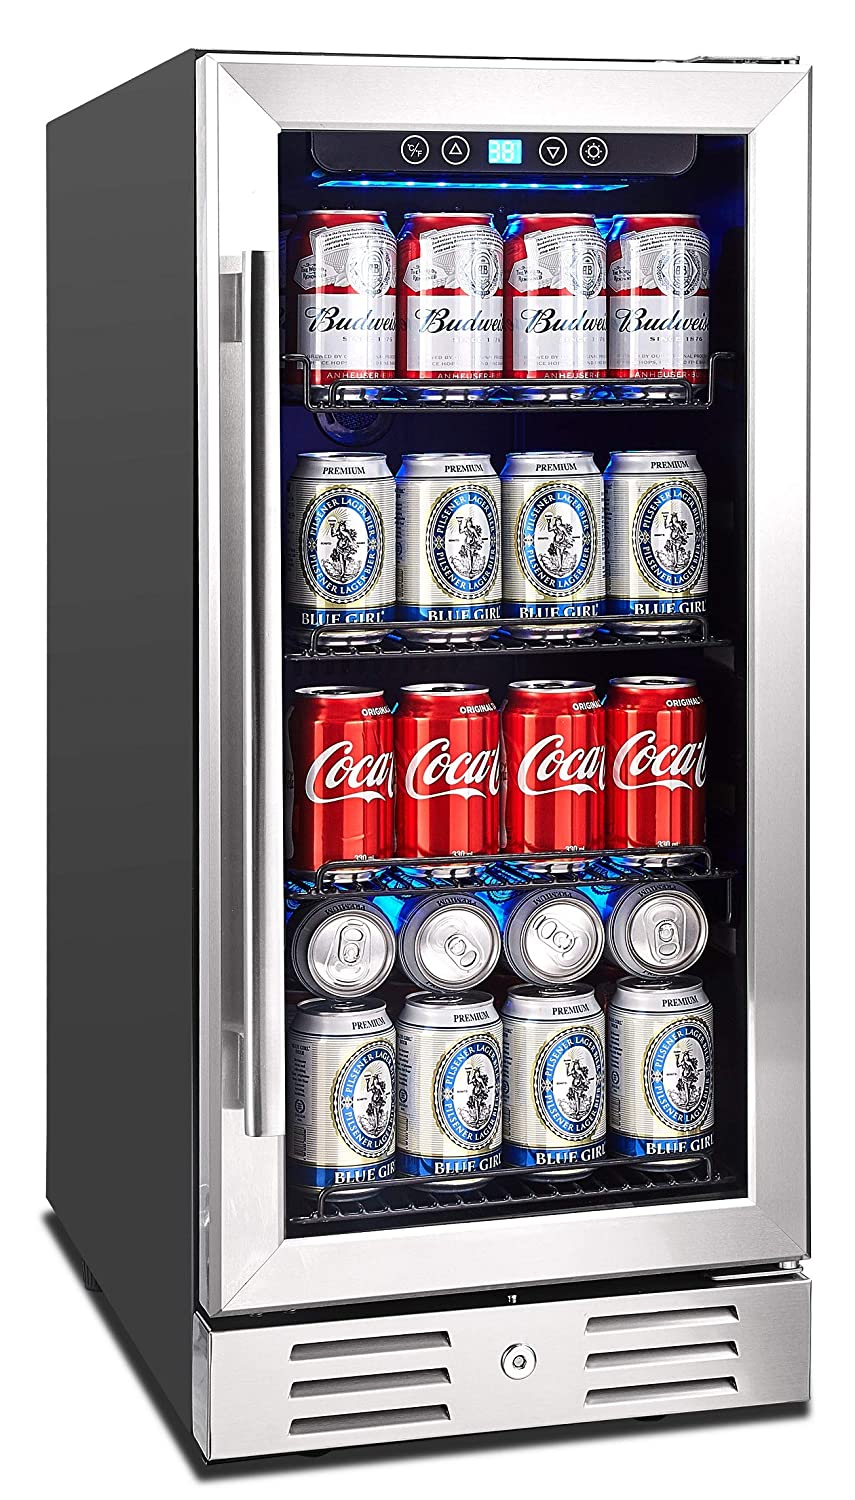 Kalamera 15 Beverage Cooler 96 can Built-in or Freestanding Touch Control Beverage Fridge with Blue Interior Light